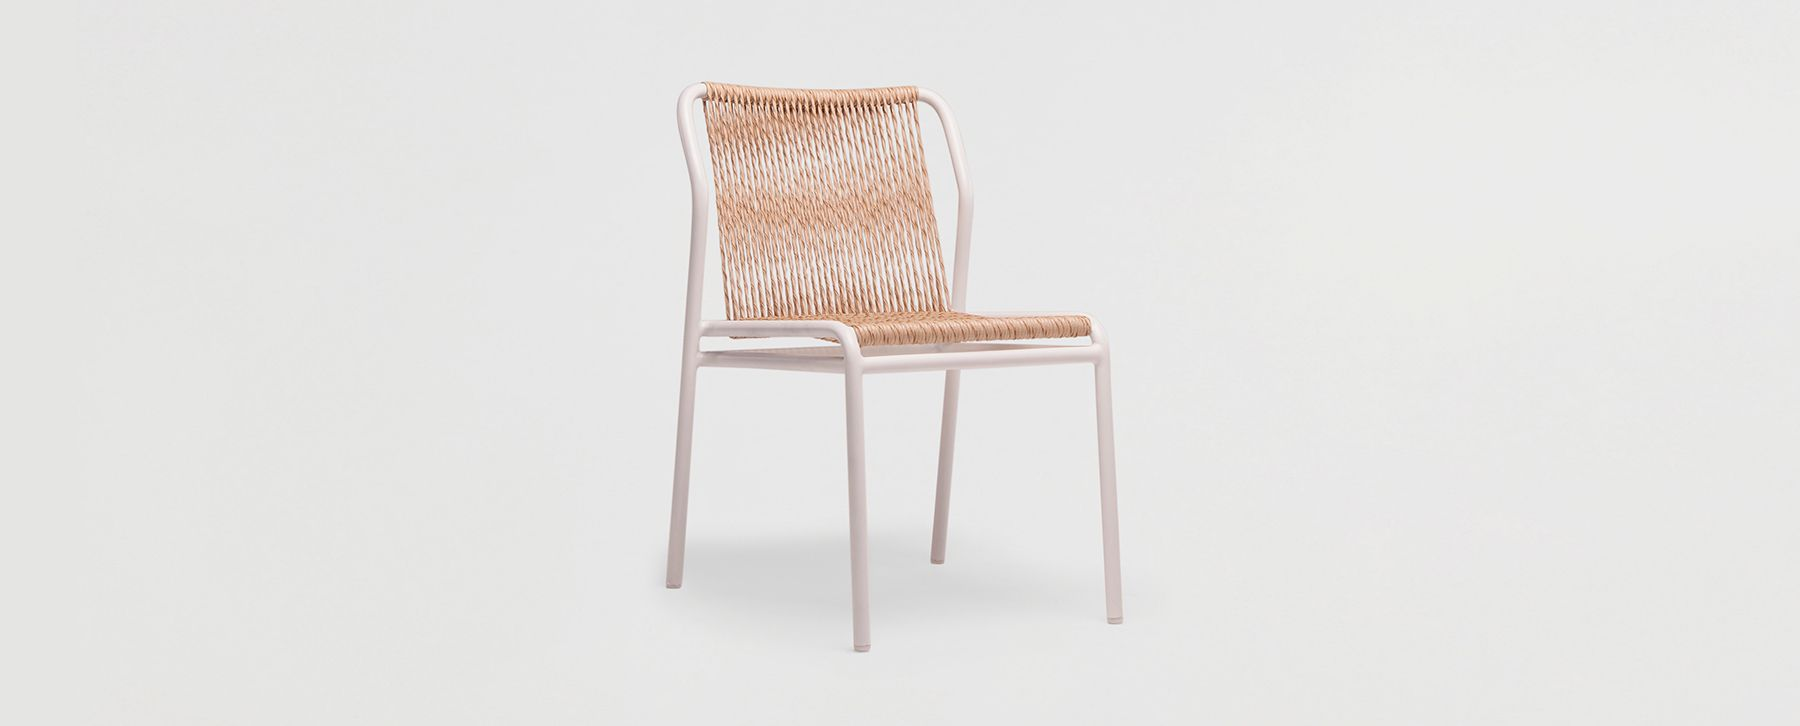 dining chairs contemporary. Flyn Dining Chair Contemporary Rope Patio Furniture Hotels Hospitality Outdoor Chairs